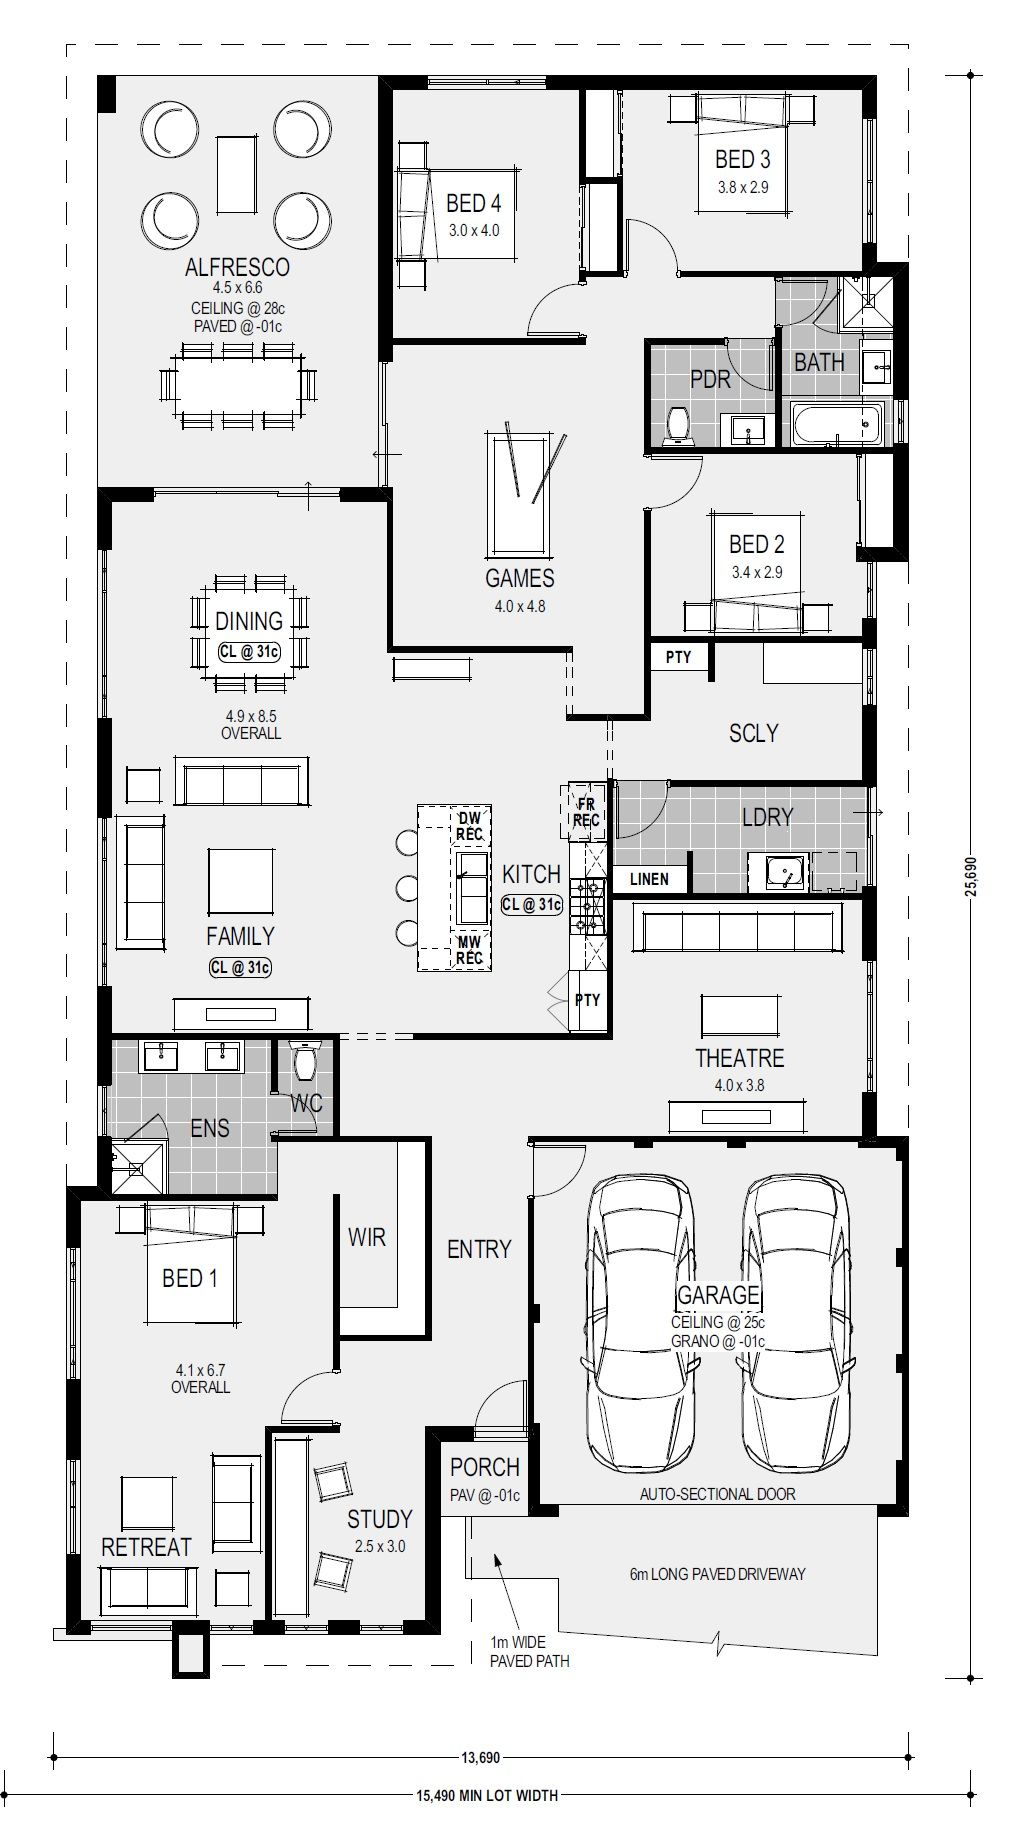 Floor Plans Of Washington Designer Kitchen By Home Group Wa Floor Plans House Plans House Floor Plans